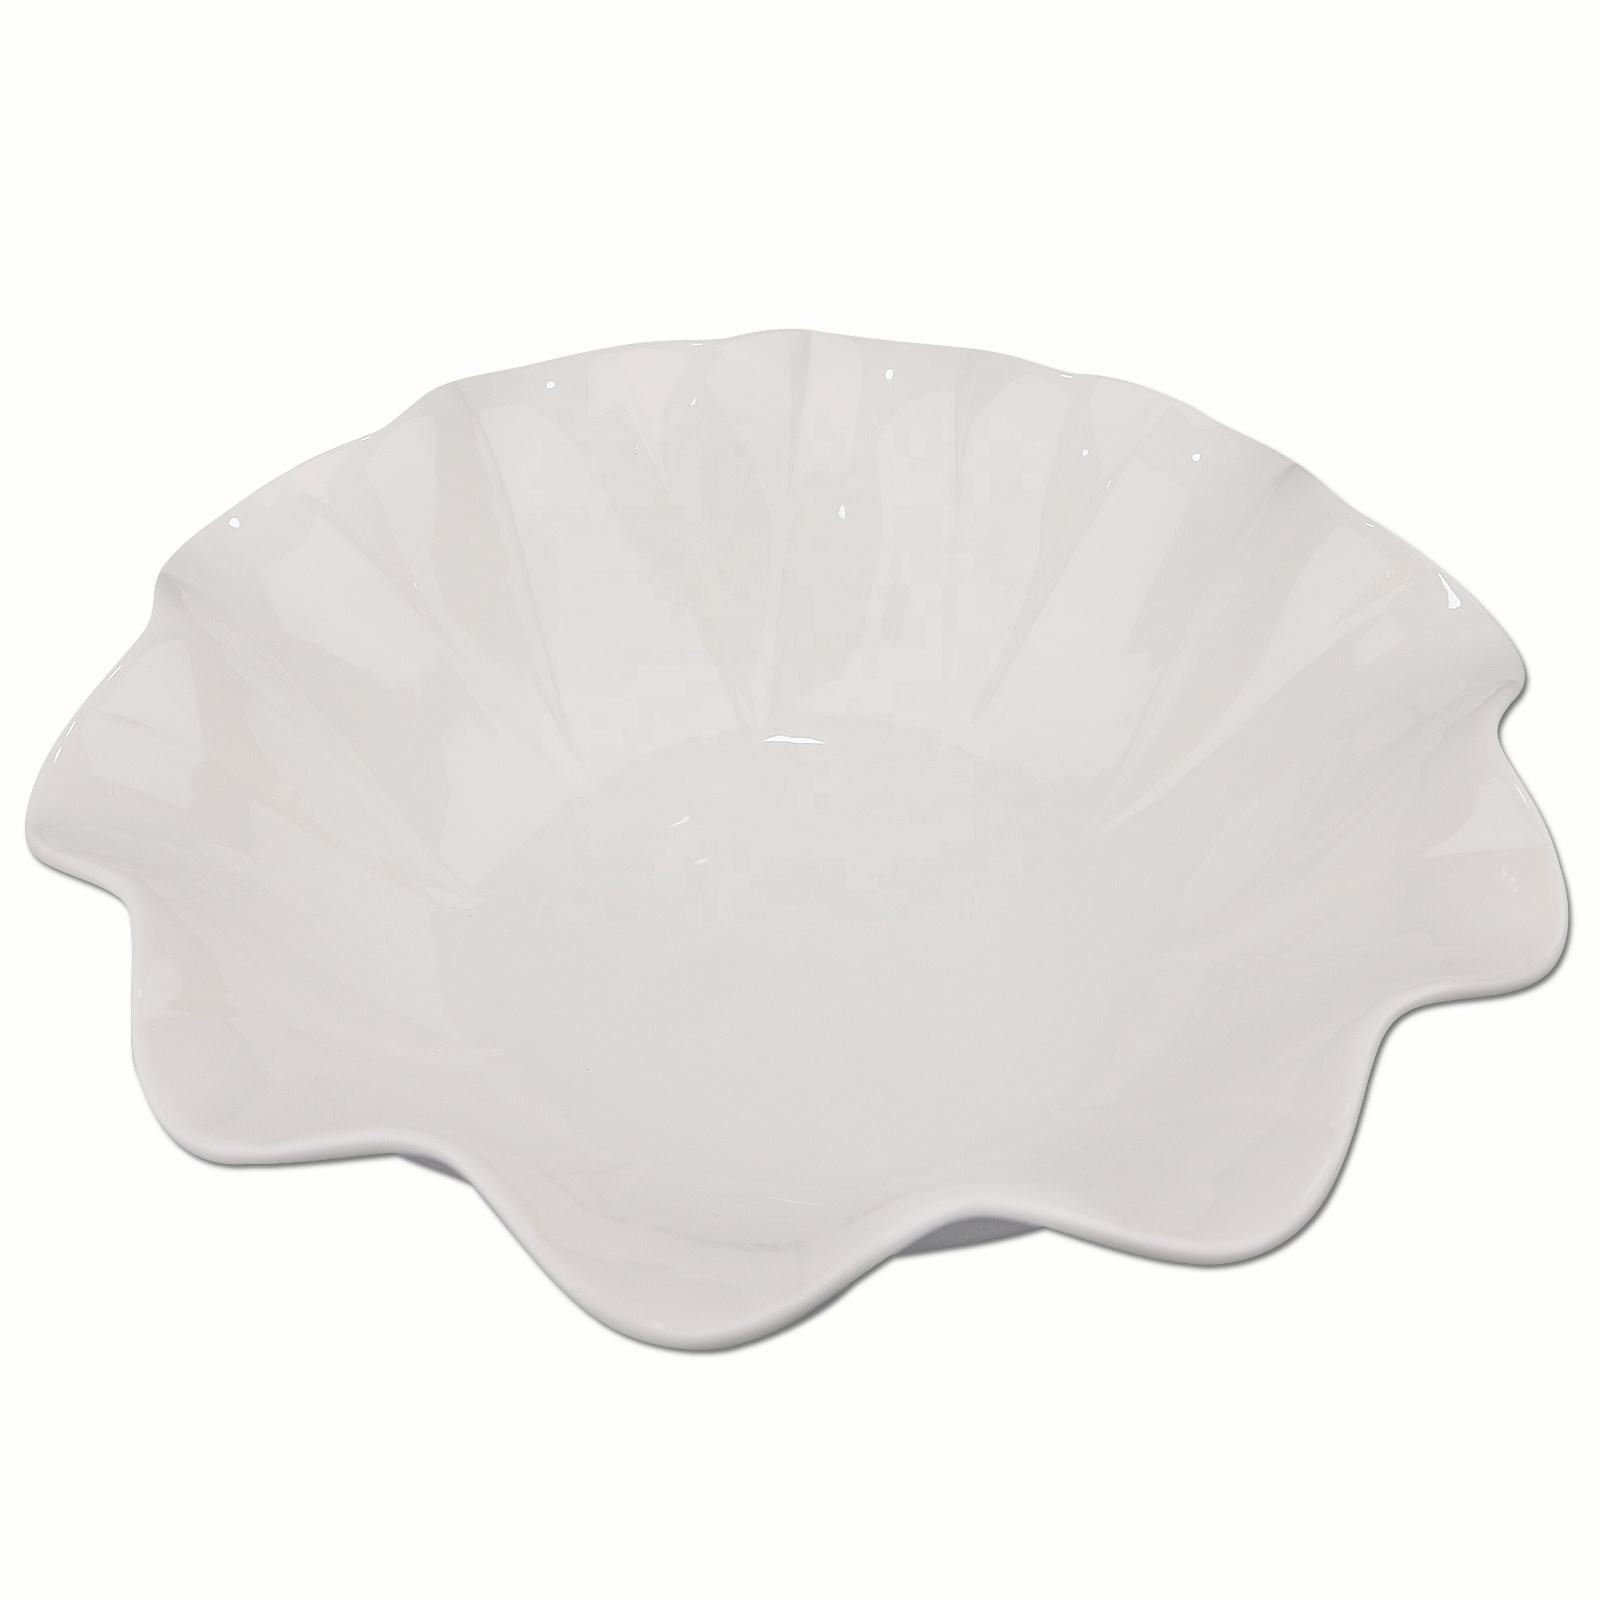 Super White Porcelain Snow Lotus Petal Flower Bowl Ceramic Soup Bowl Salad bowl